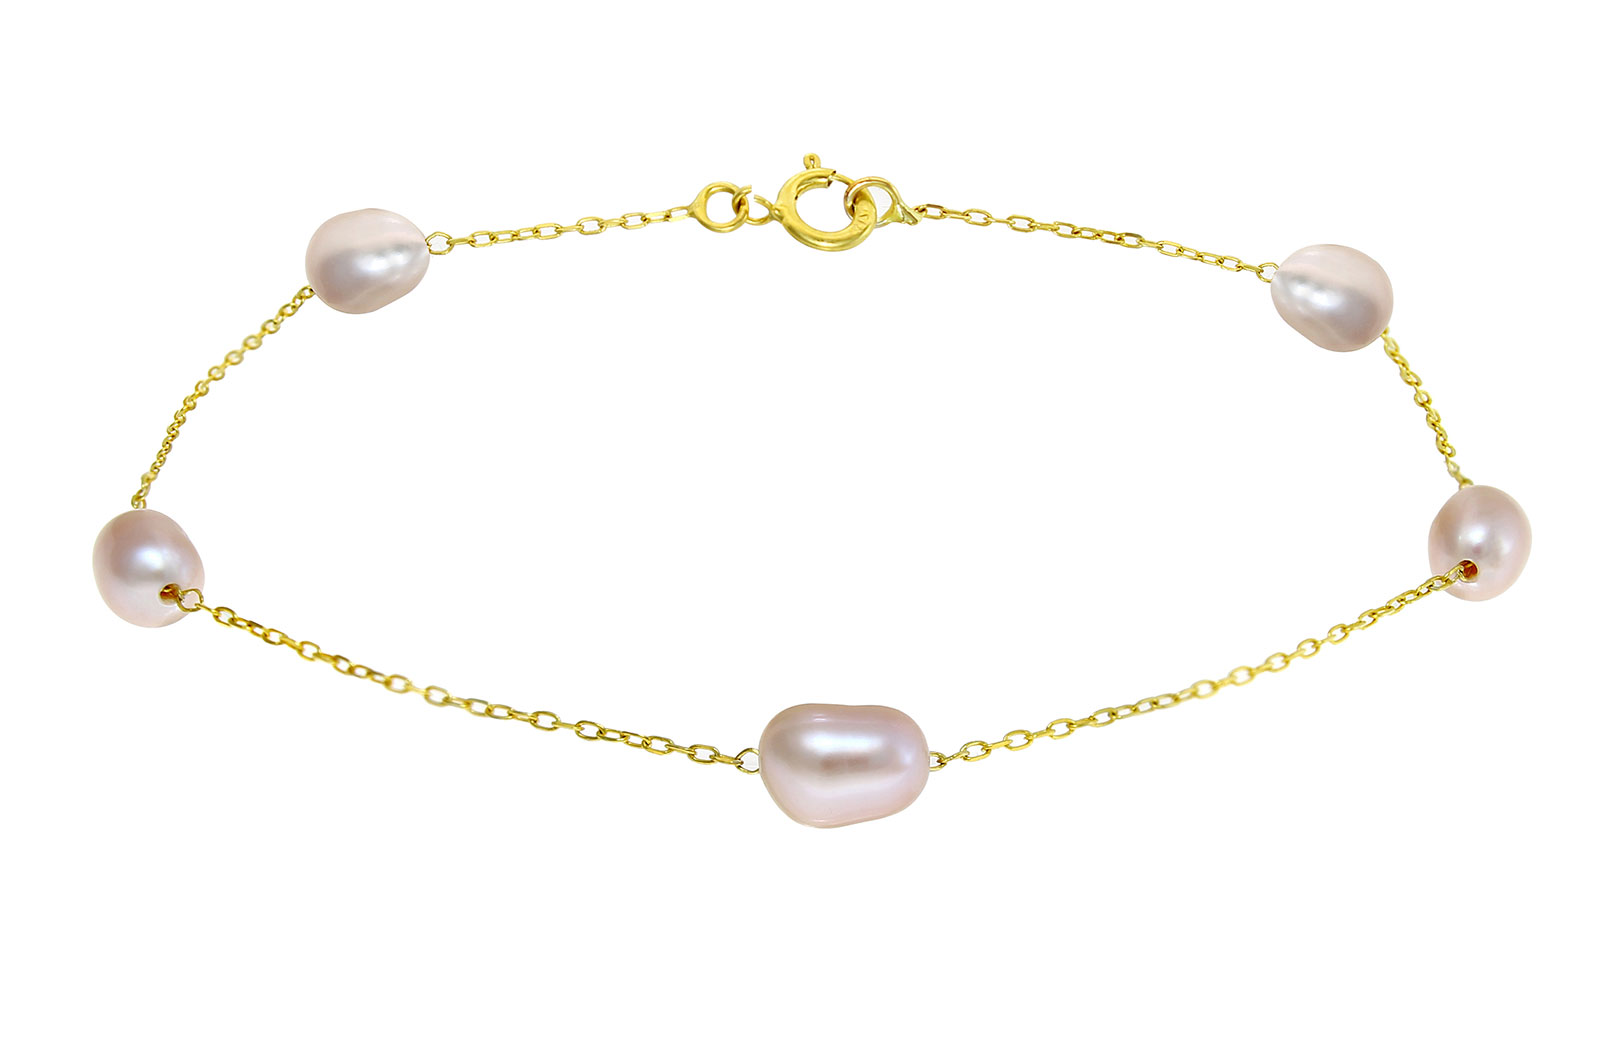 Vera Perla 10k Solid Gold and Purple Color Genuine Pearls Bracelet